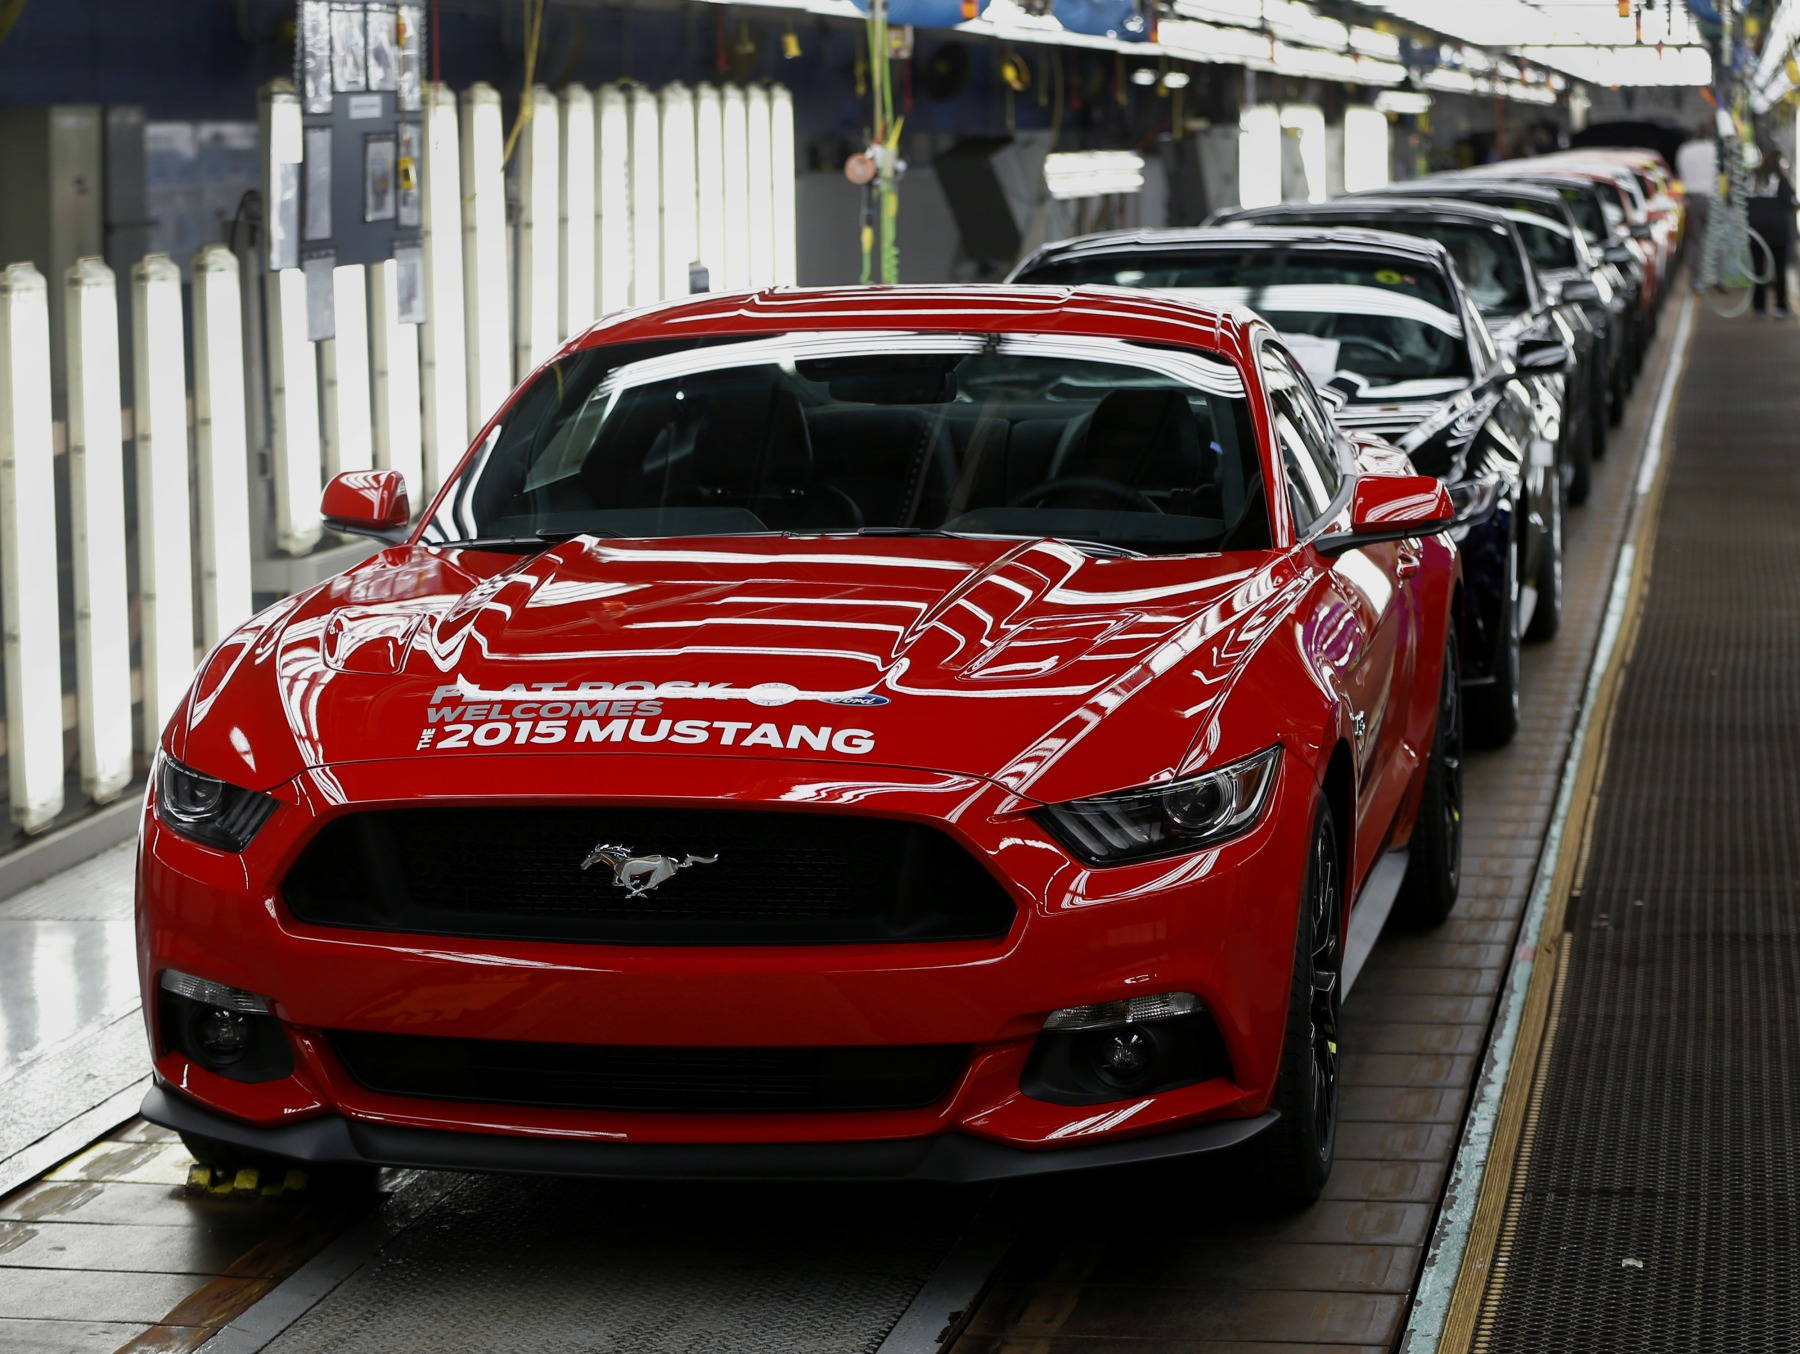 Ford S Mustang Has A Problem The New Mustang Bloomberg